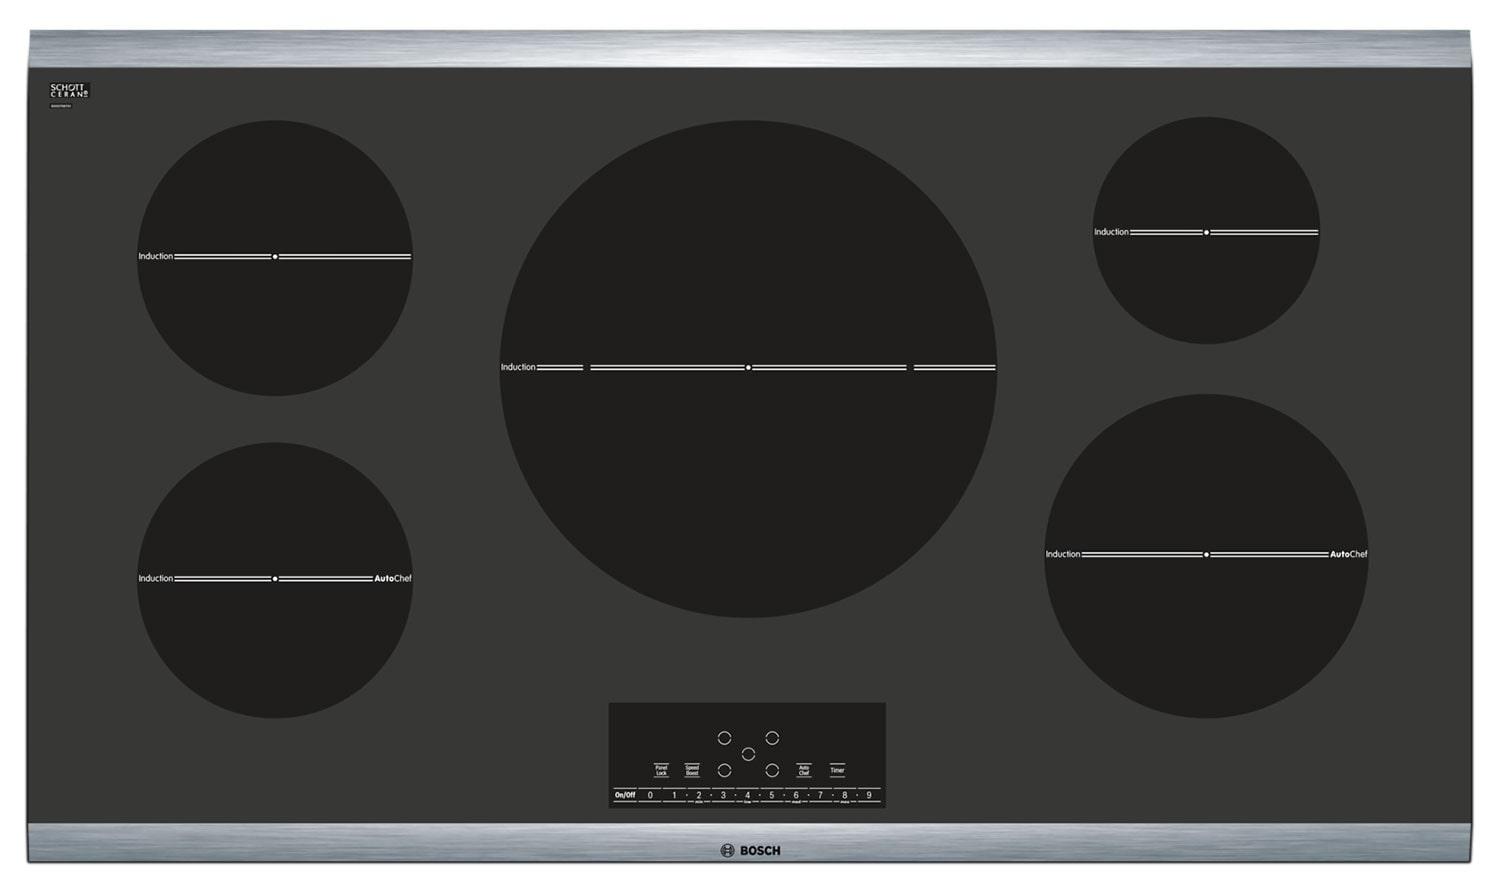 Cooking Products - Bosch Black Electric Induction Cooktop - NIT8666SUC